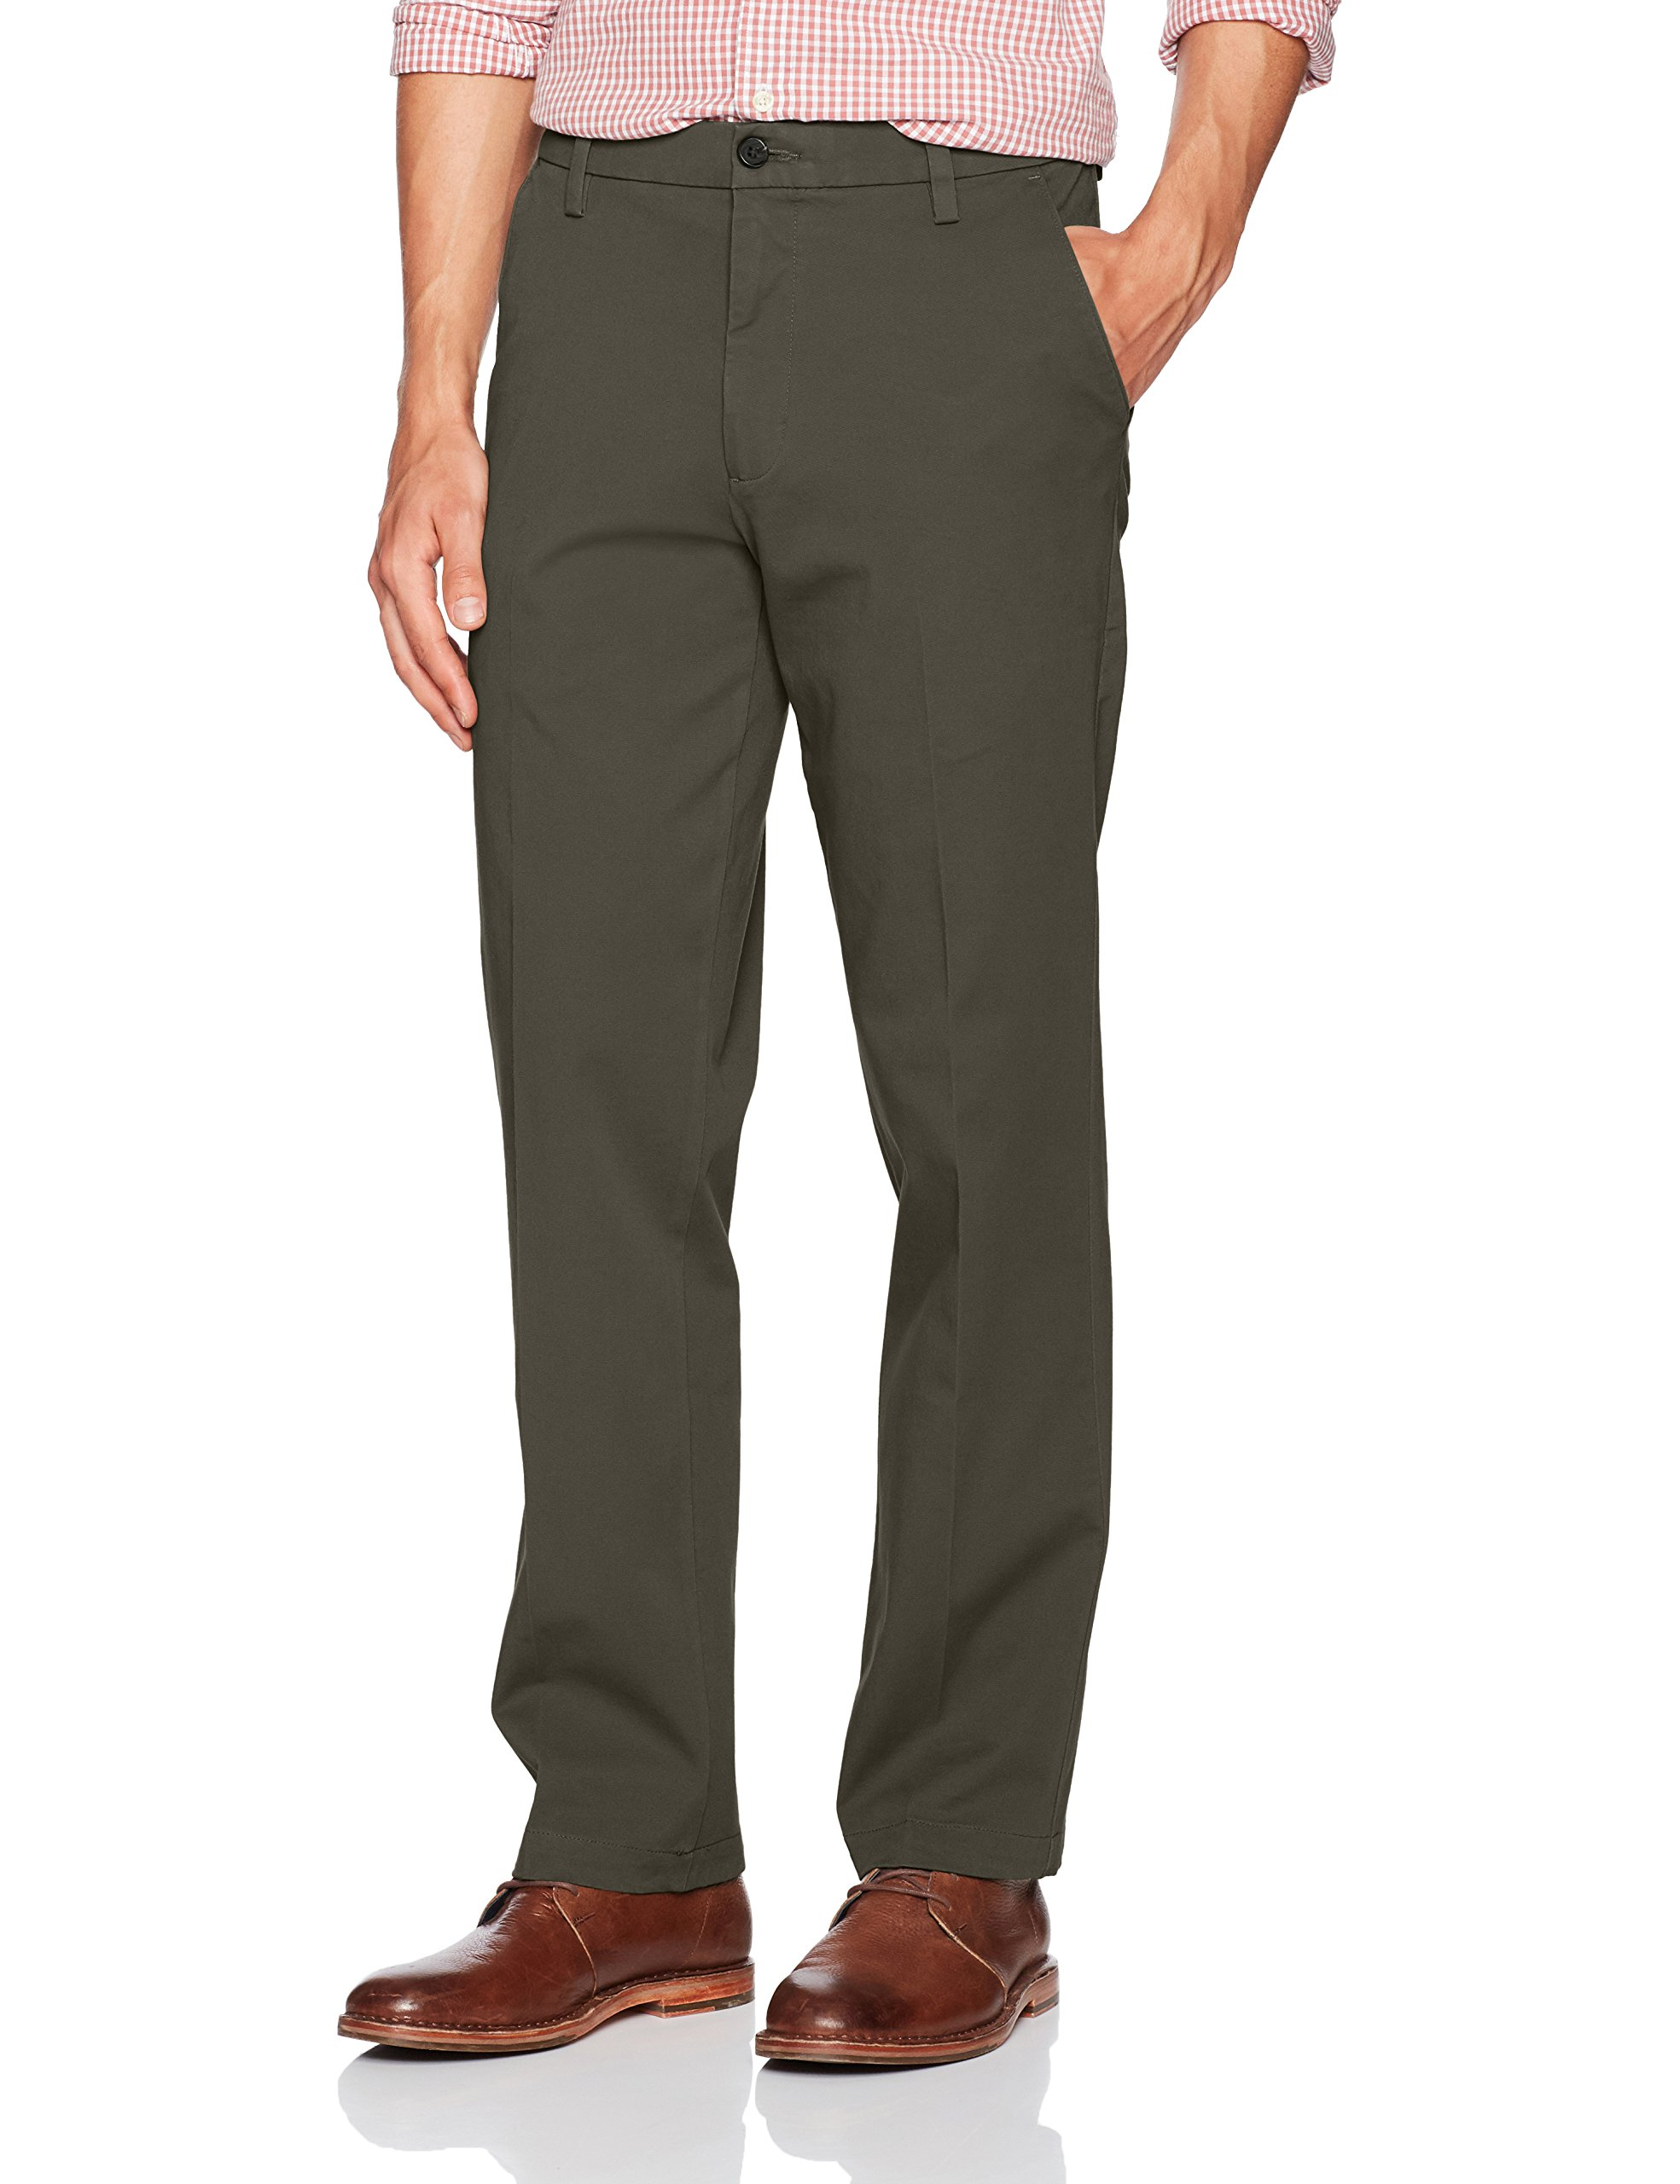 91cf42d6f0cff8 Dockers Men's Straight Fit Workday Khaki Pants with Smart 360 Flex, Storm  (Stretch)